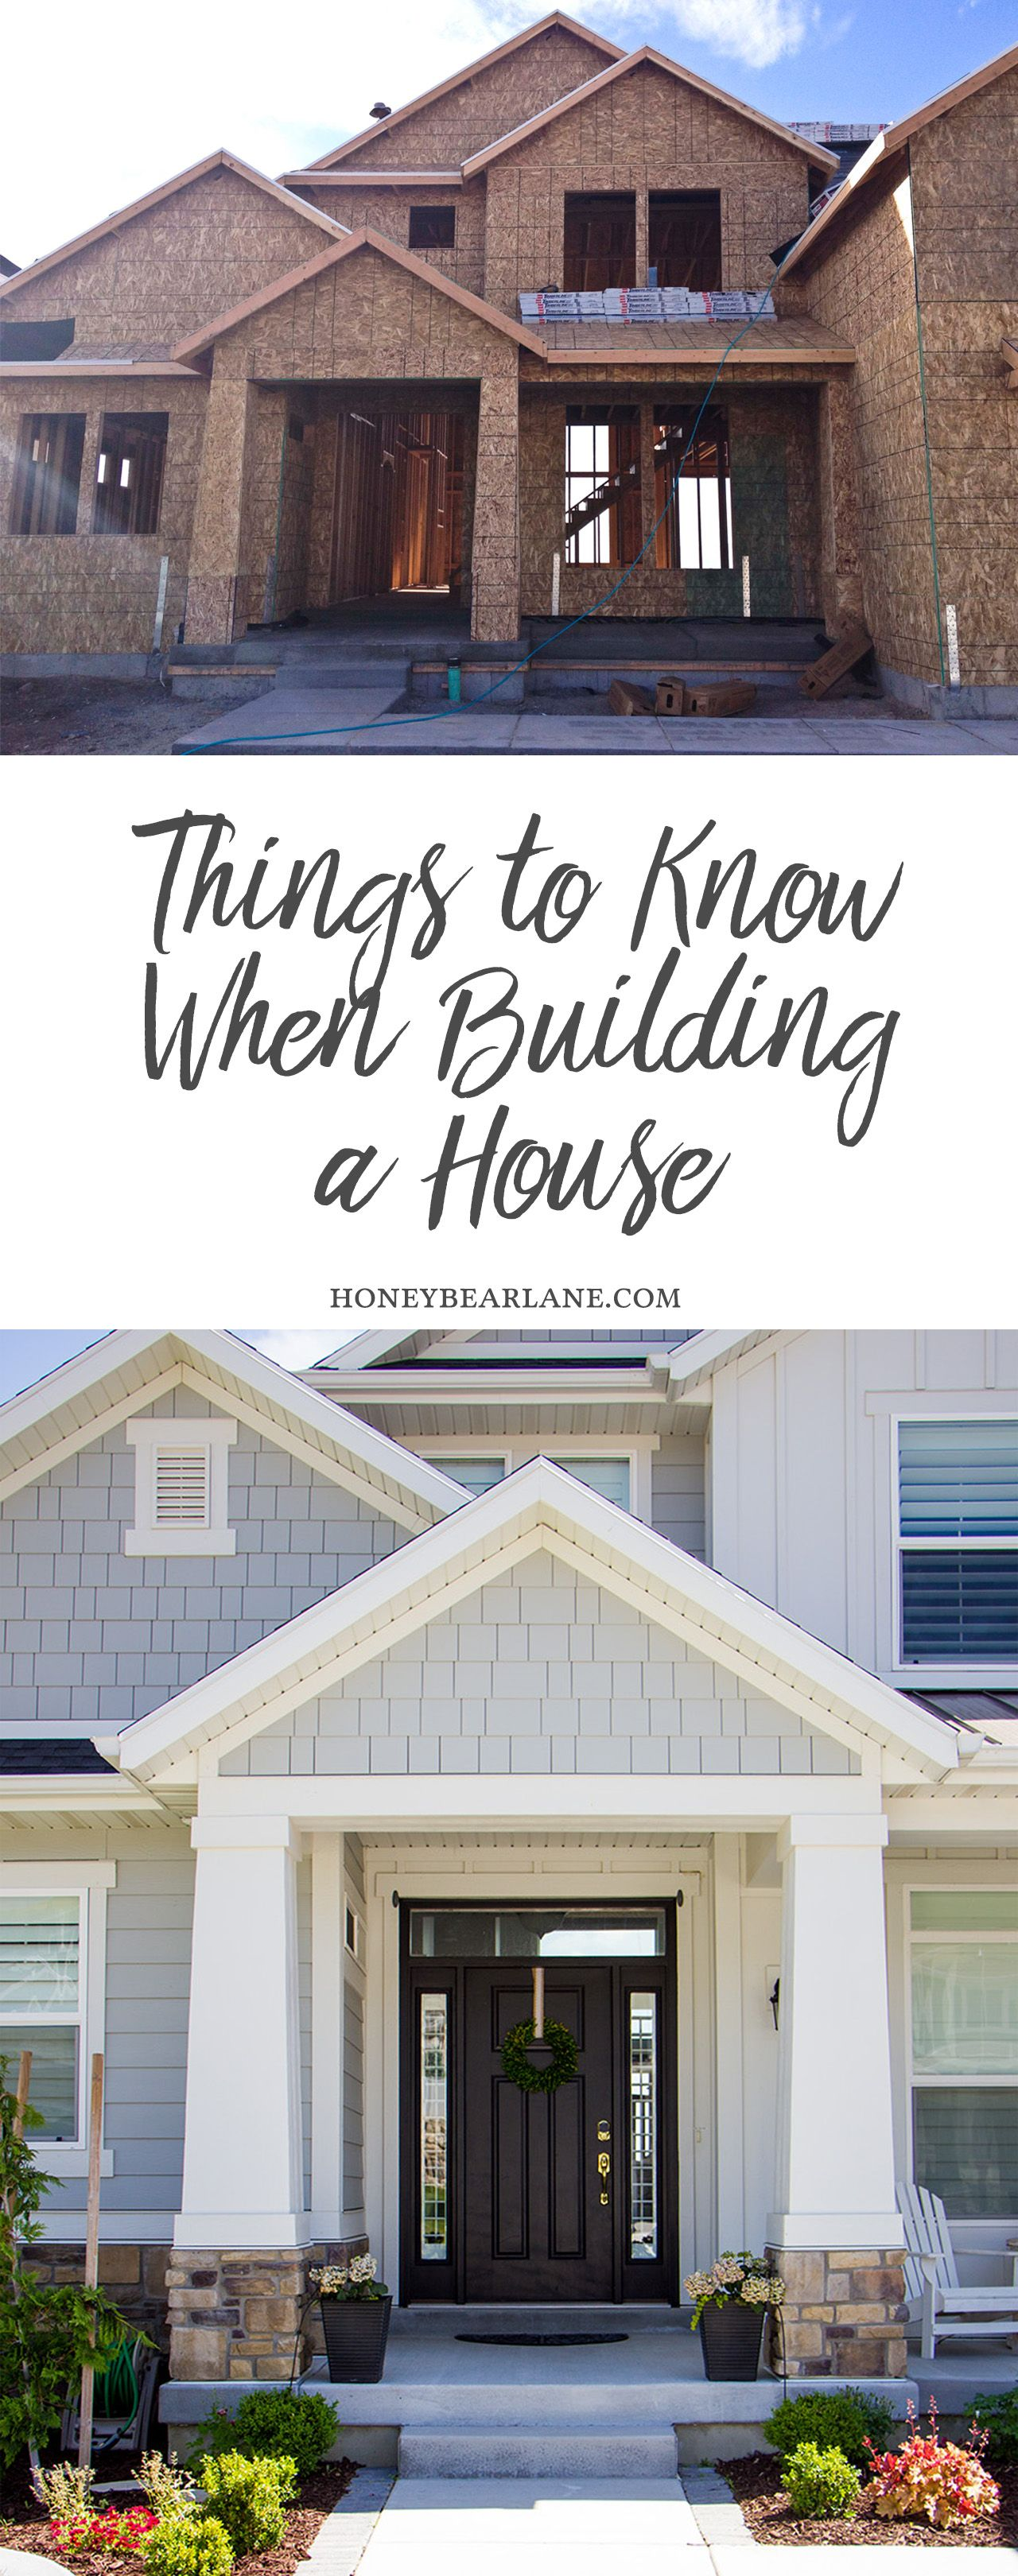 When building a house you have to consider a bazillion things and it's overwhelming. Read this post from someone who has built and learn from my mistakes!